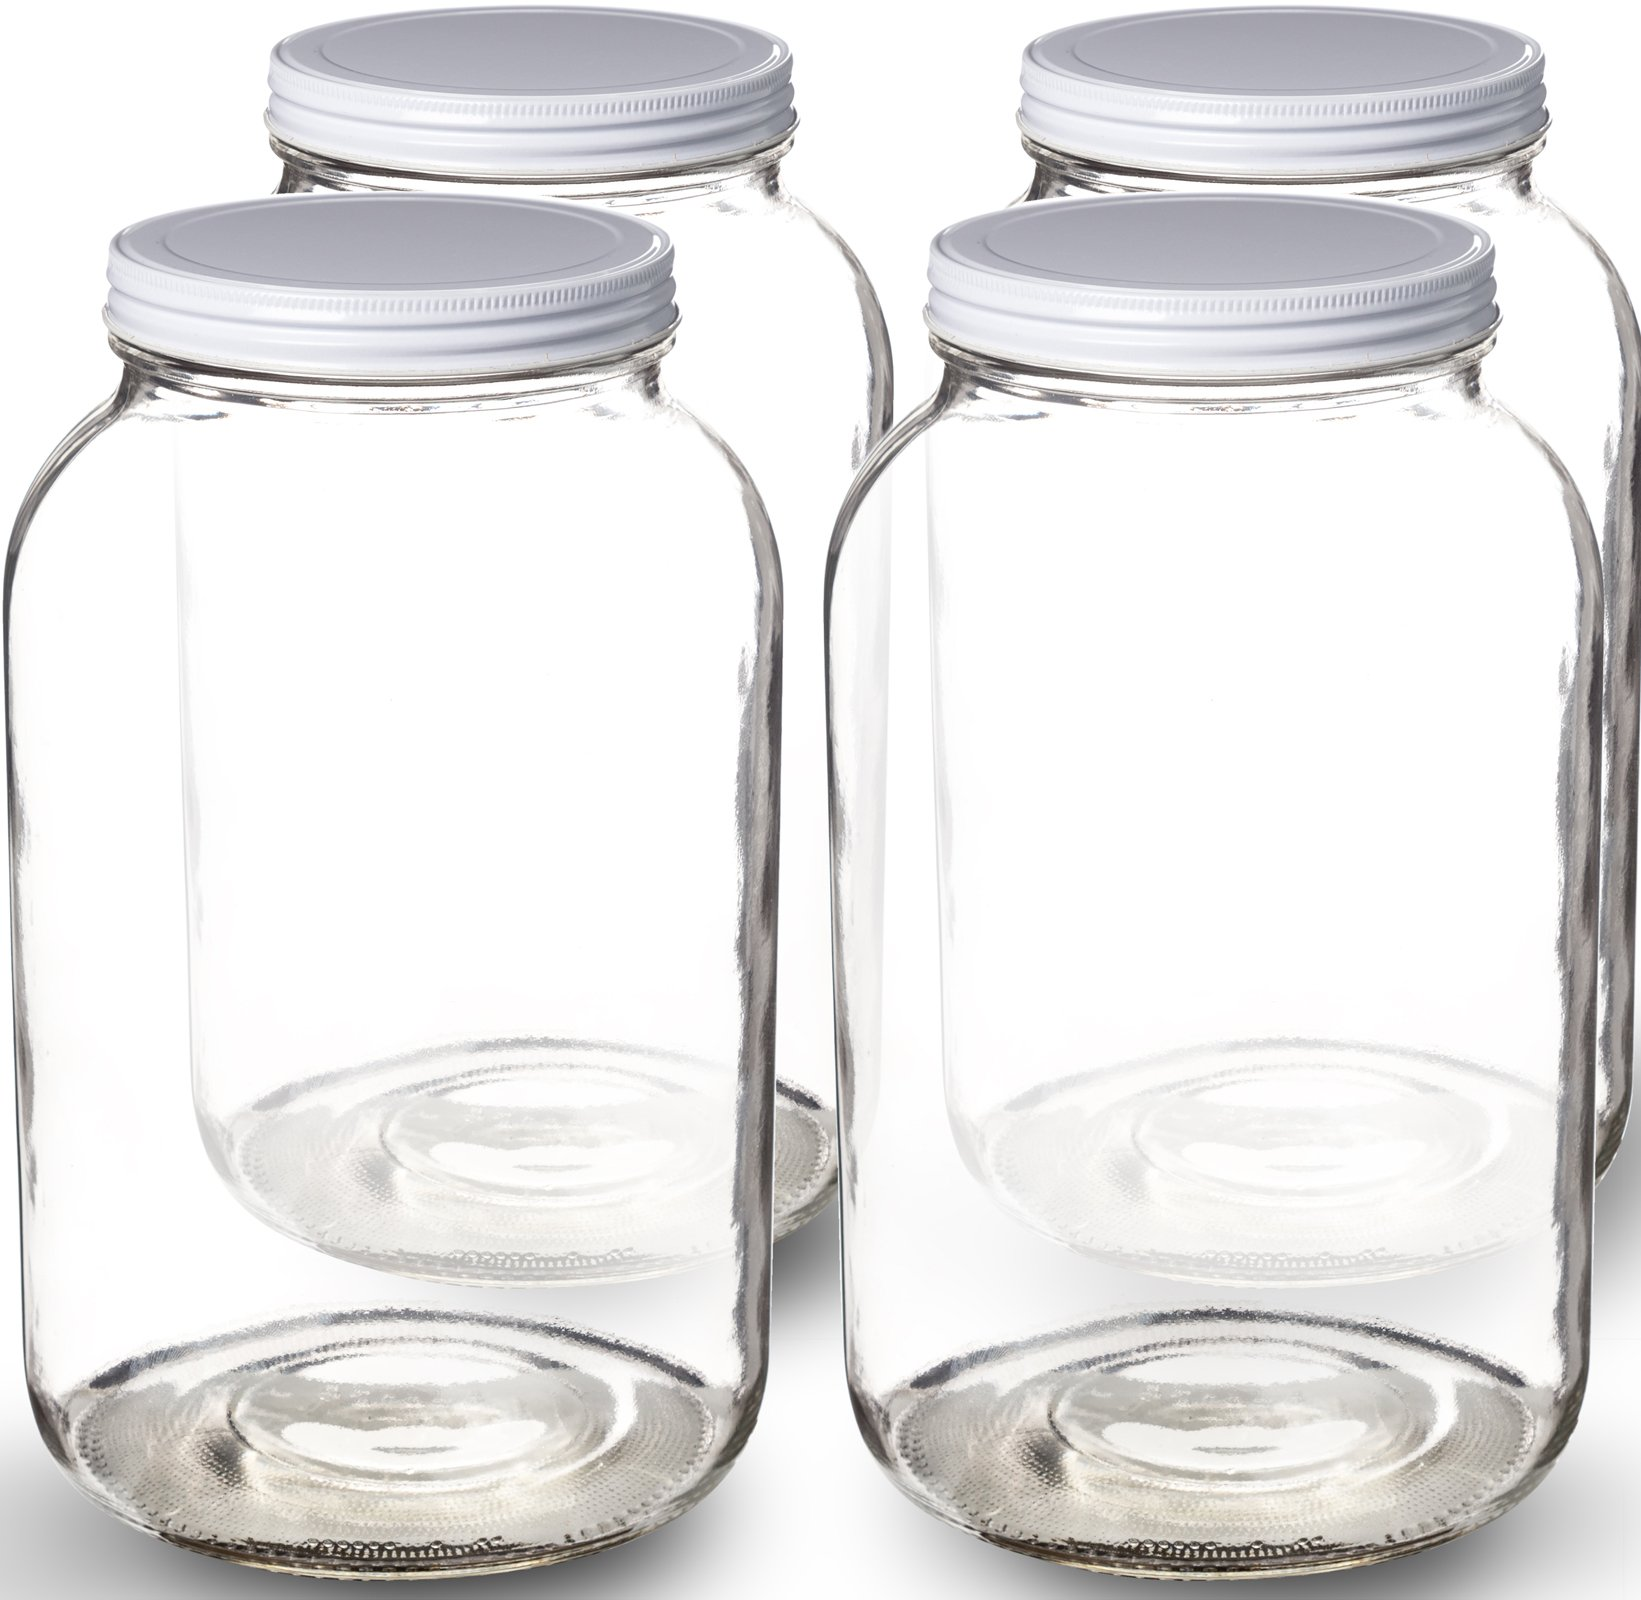 Paksh Novelty Wide Mouth 1 Gallon Clear Glass Jar + Metal